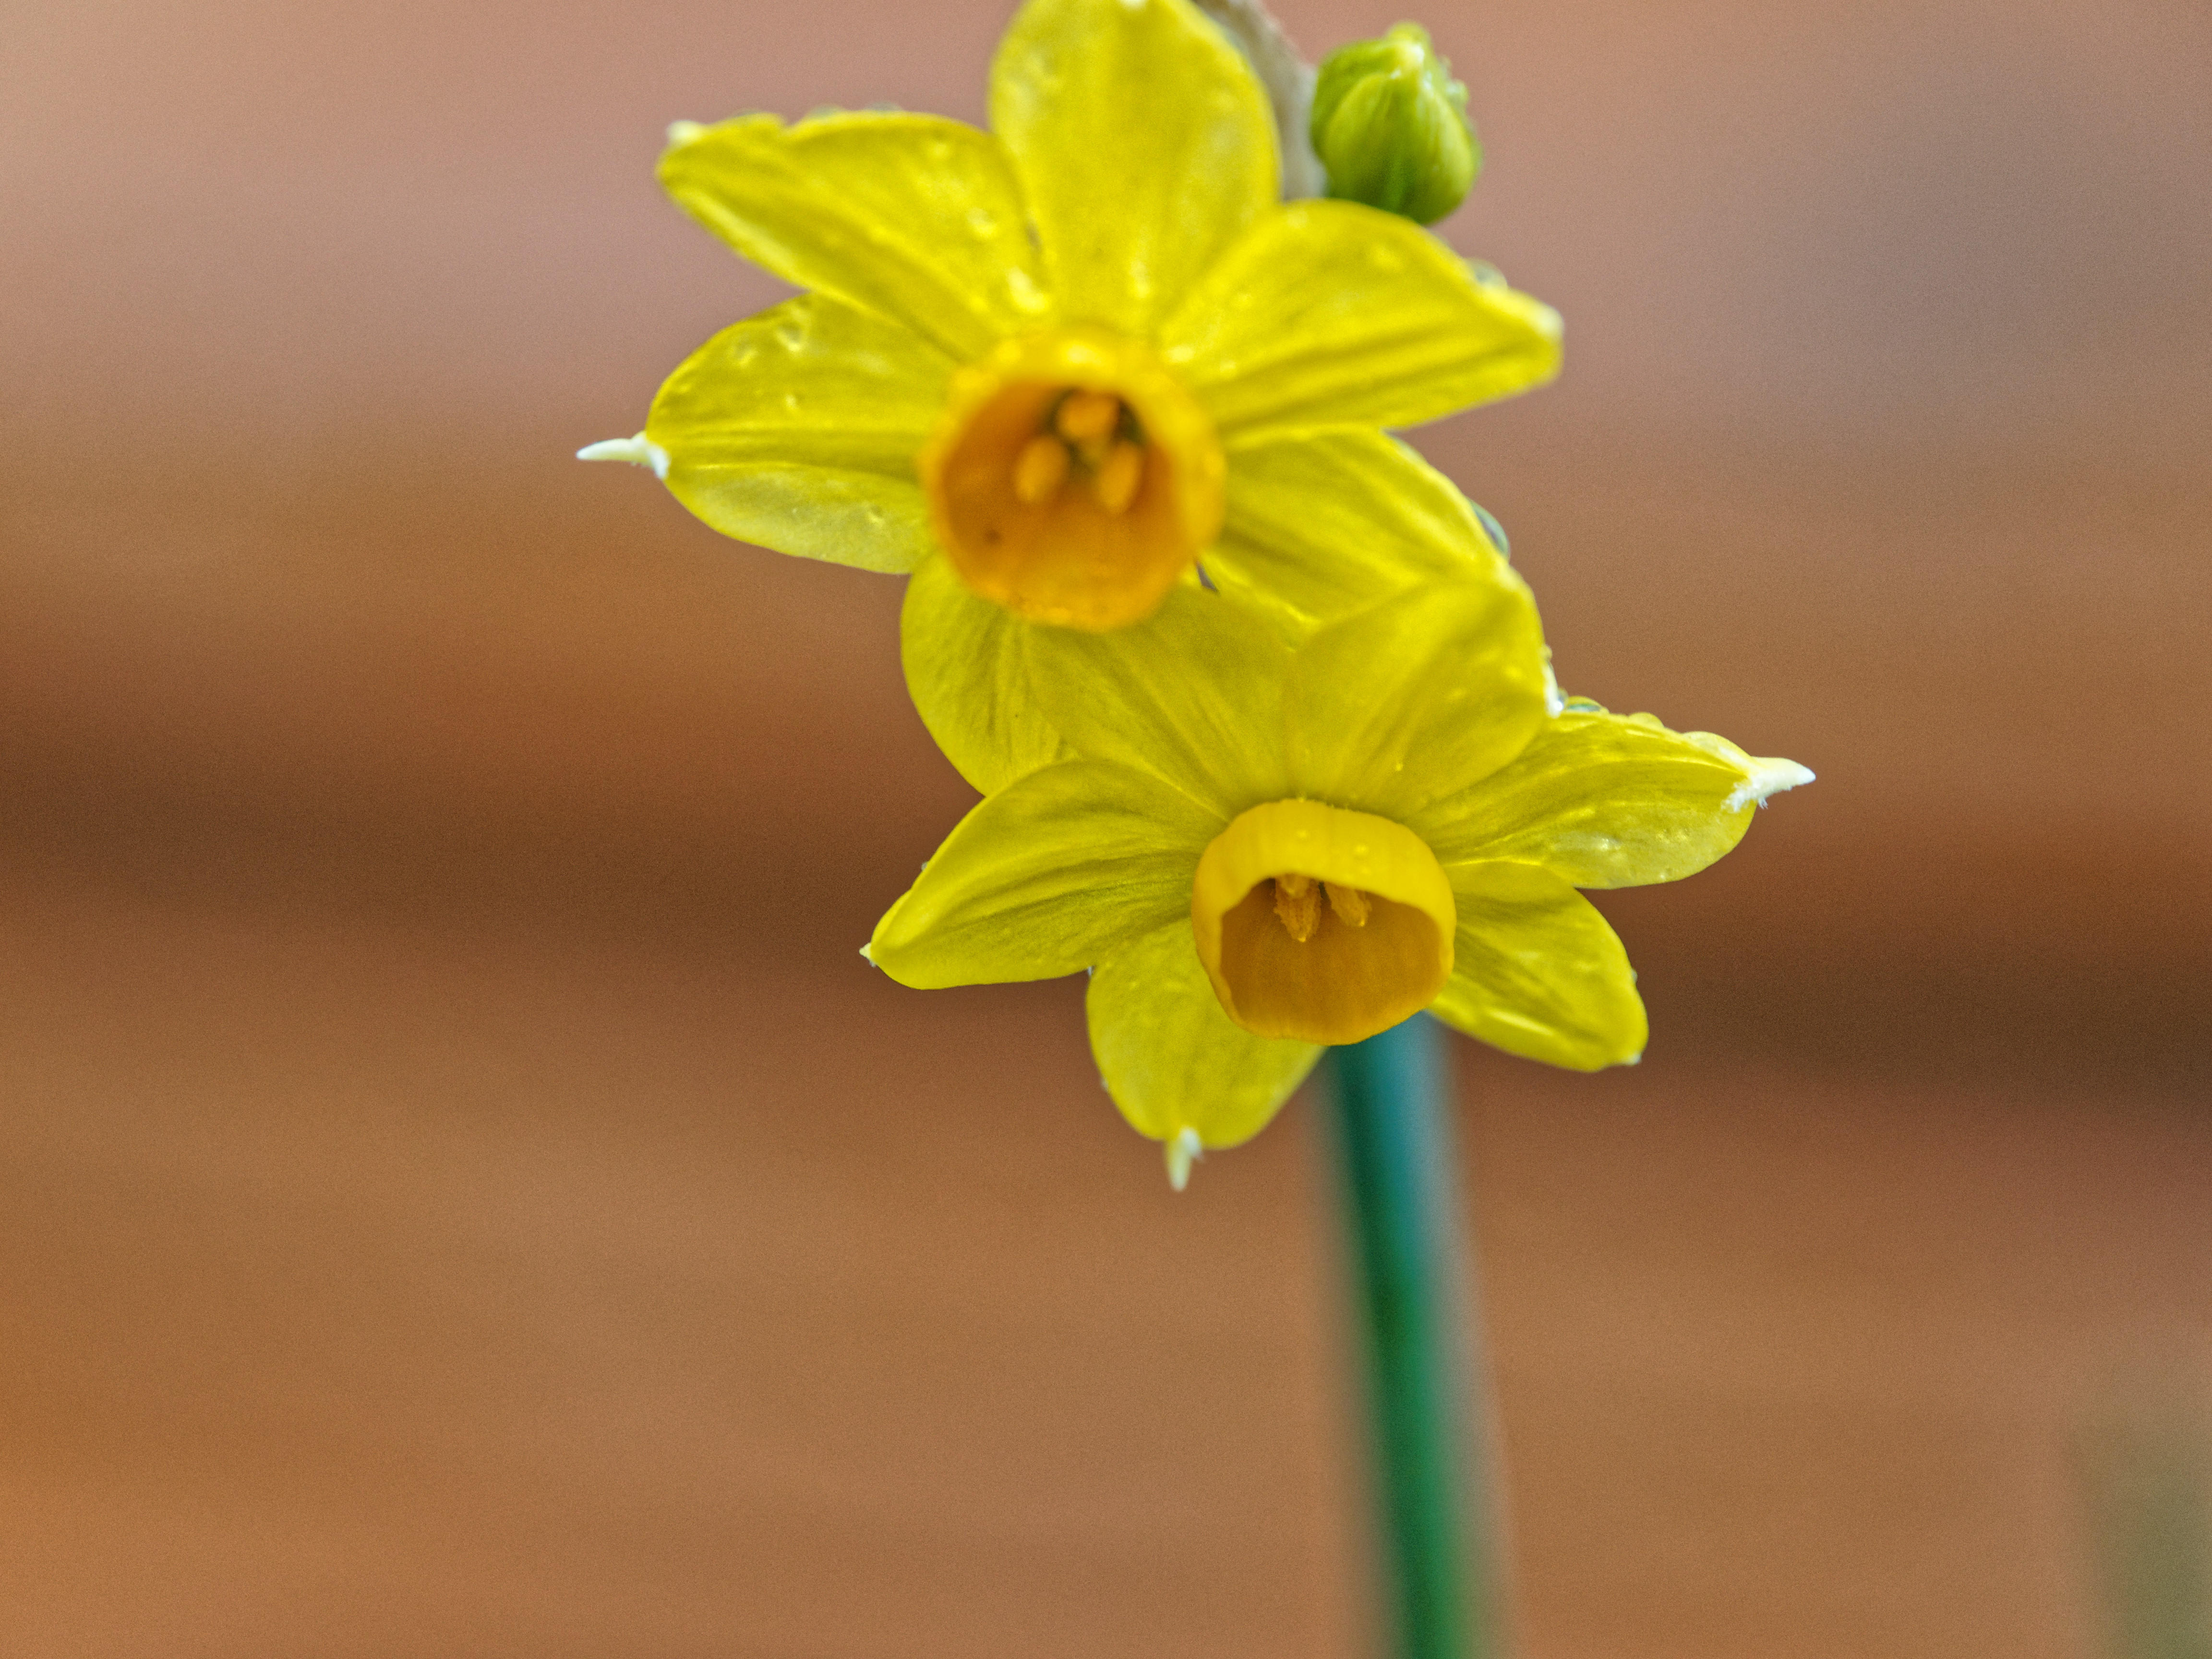 This should be Daffodil-2.jpeg.  Is it missing?